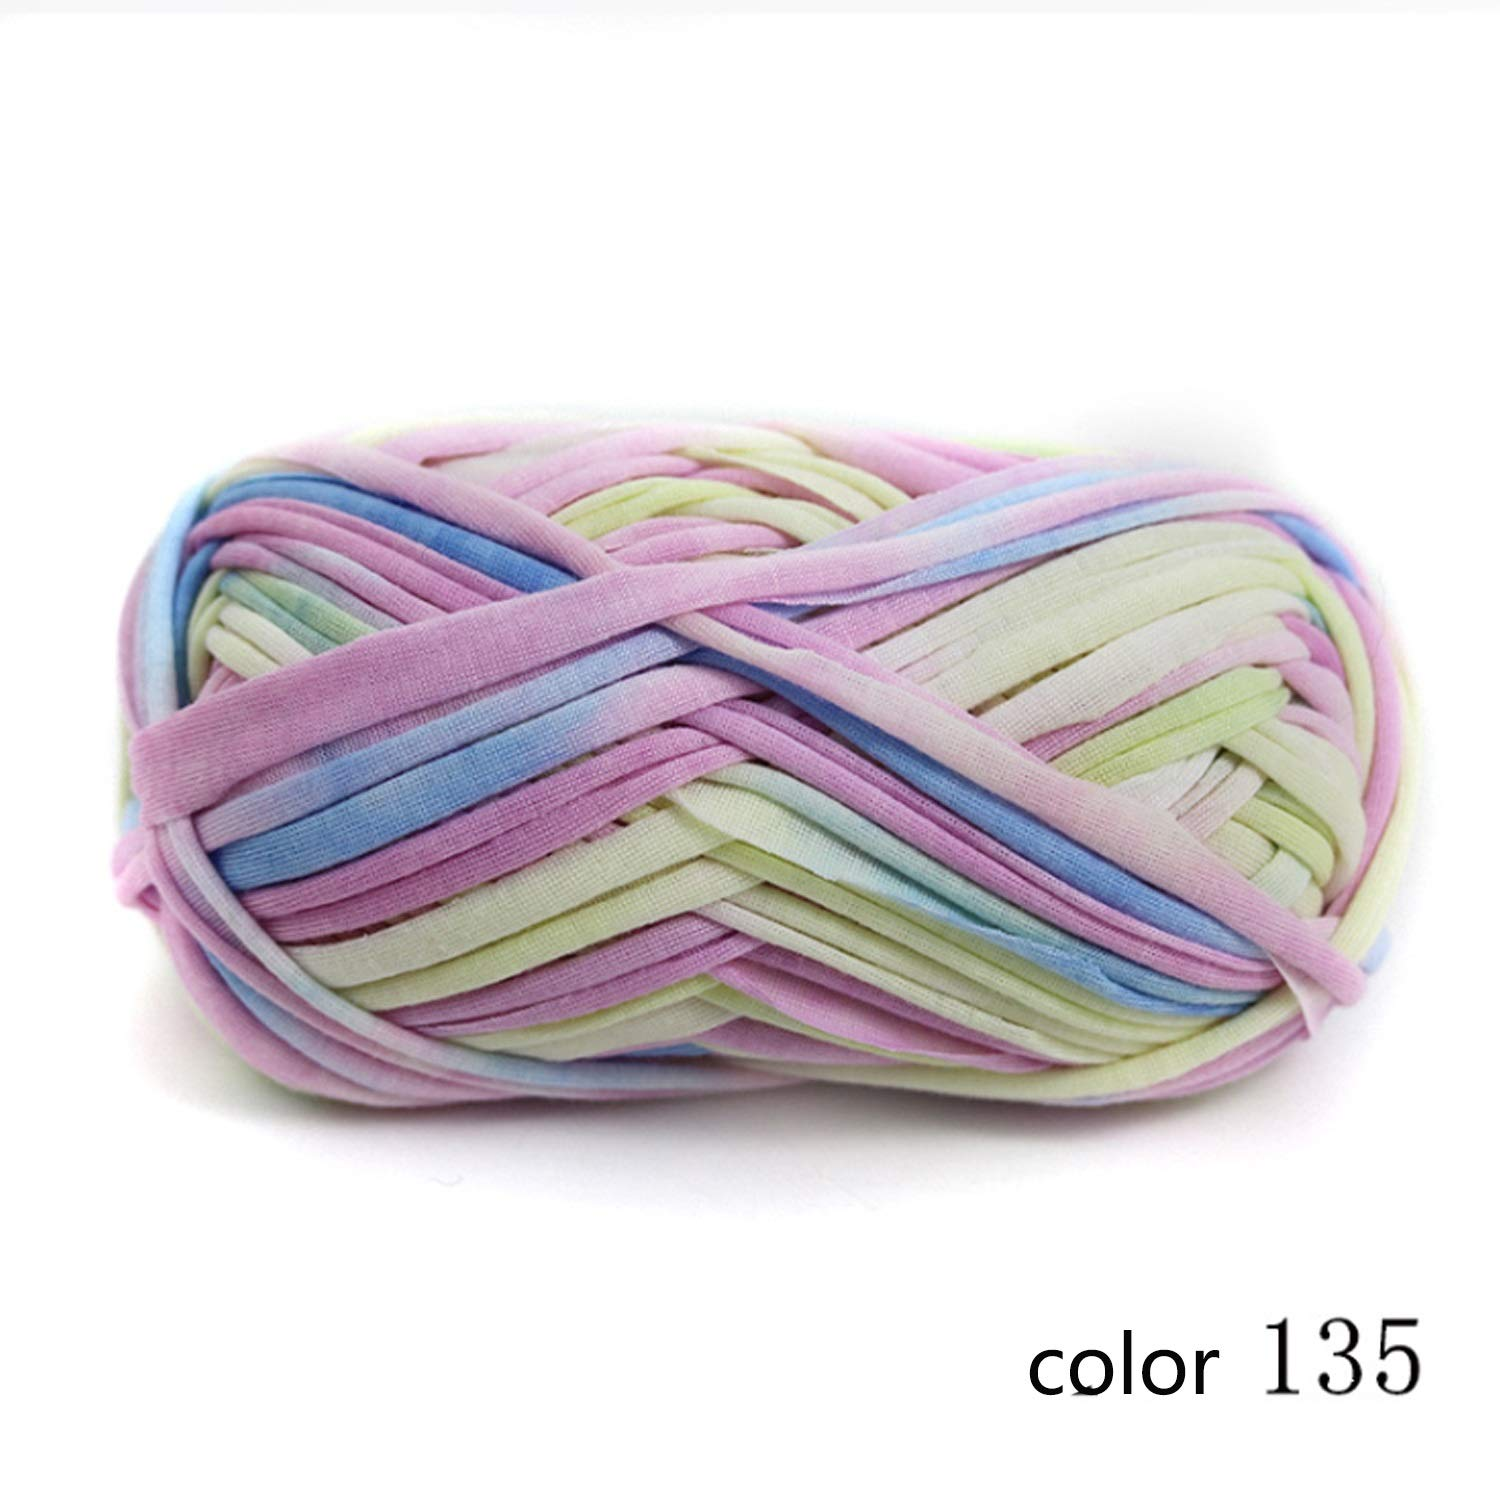 Col 135 20 balls Yarn knitting yarn Flower print cloth flower cloth hand crochet line bag carpet line 1   0.3 NM 1 ball about 100 g 10 multicolor selection possible ( color   Col 135 , UnitCount   20 balls )